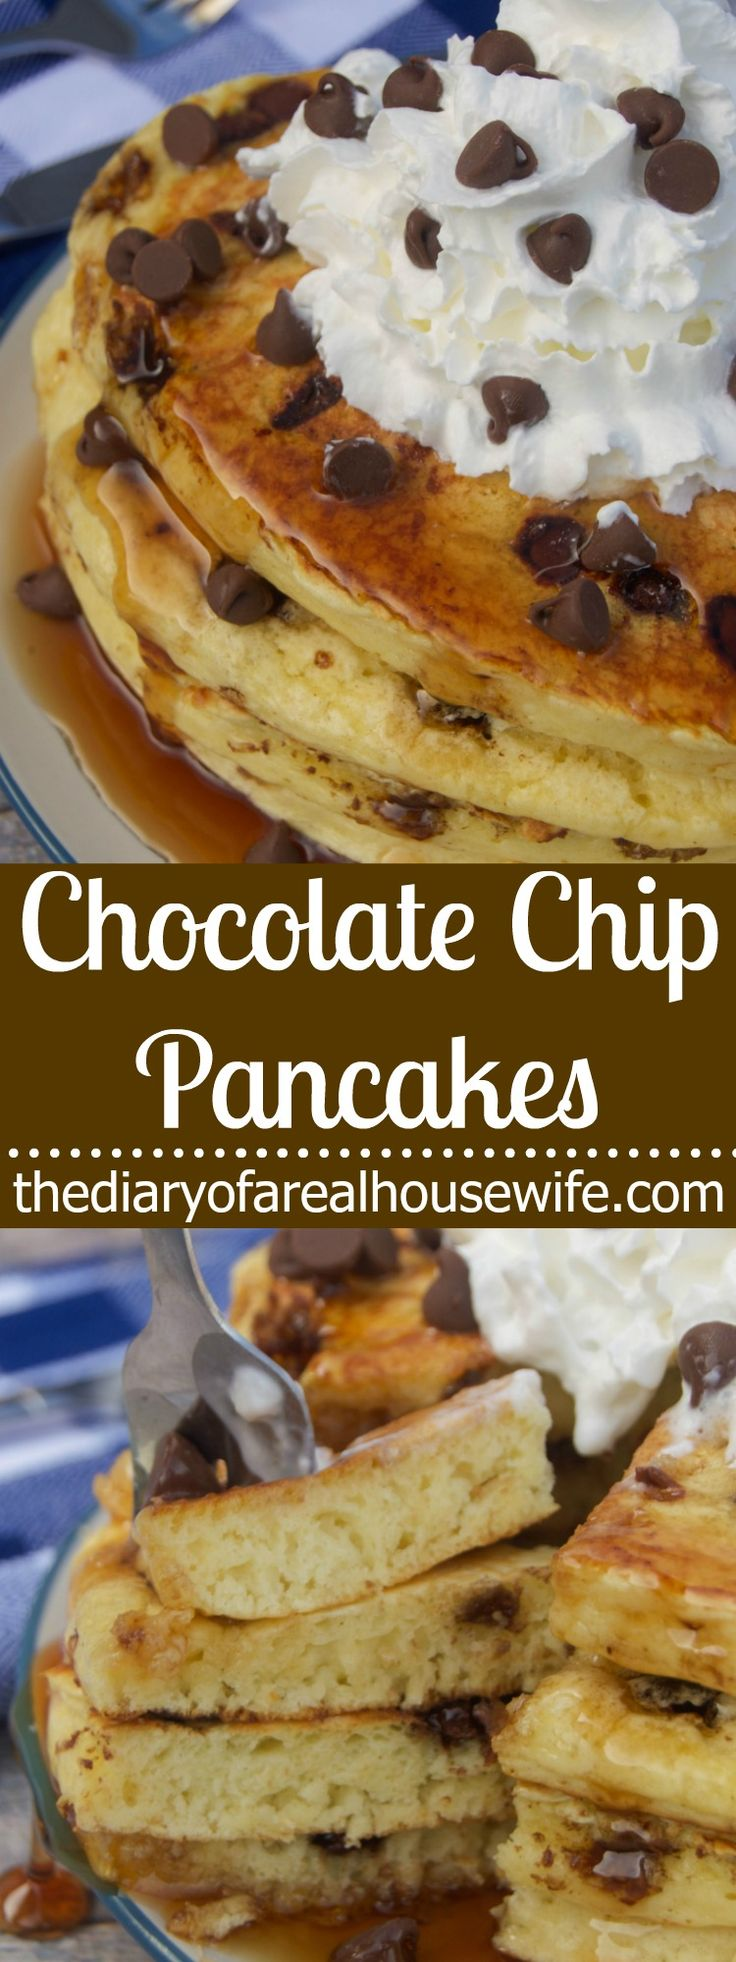 Chocolate Chip Pancakes. I LOVE this simple recipe and come on chocolate for breakfast, you can't get much better then that.